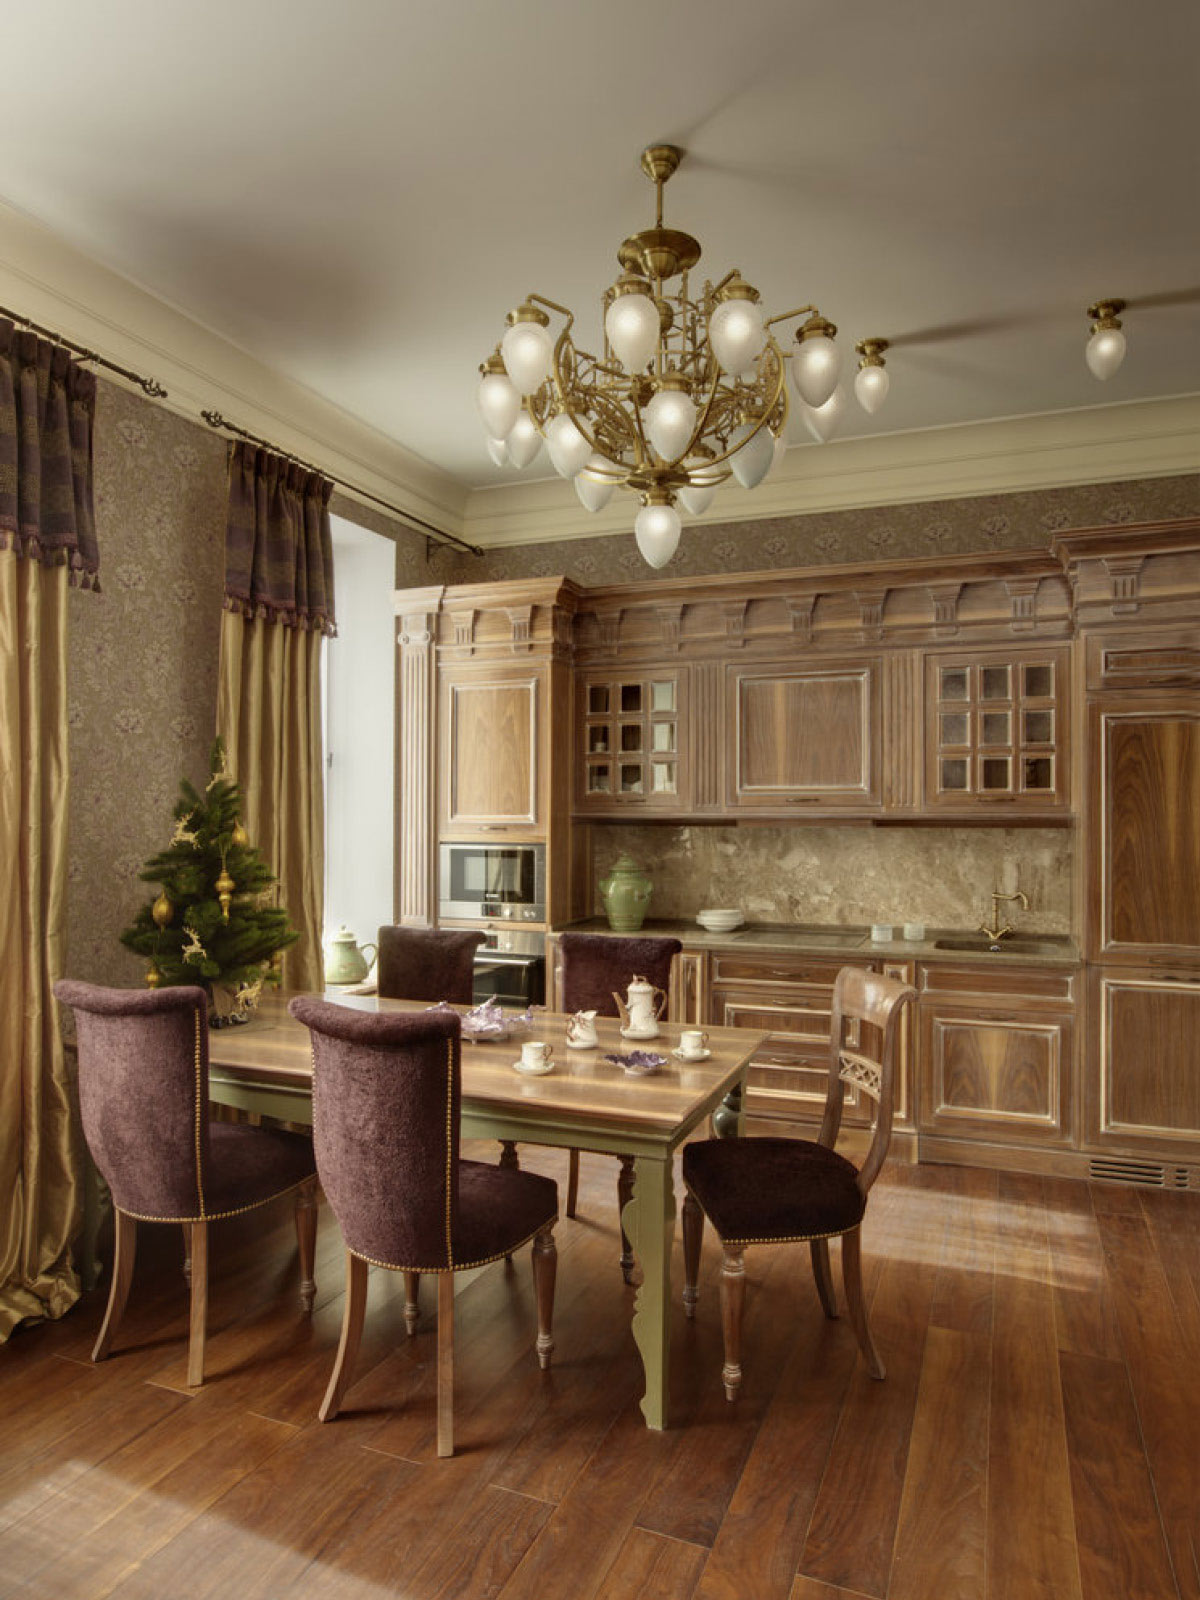 MOSCOW, Russia – Custom kitchen in private house